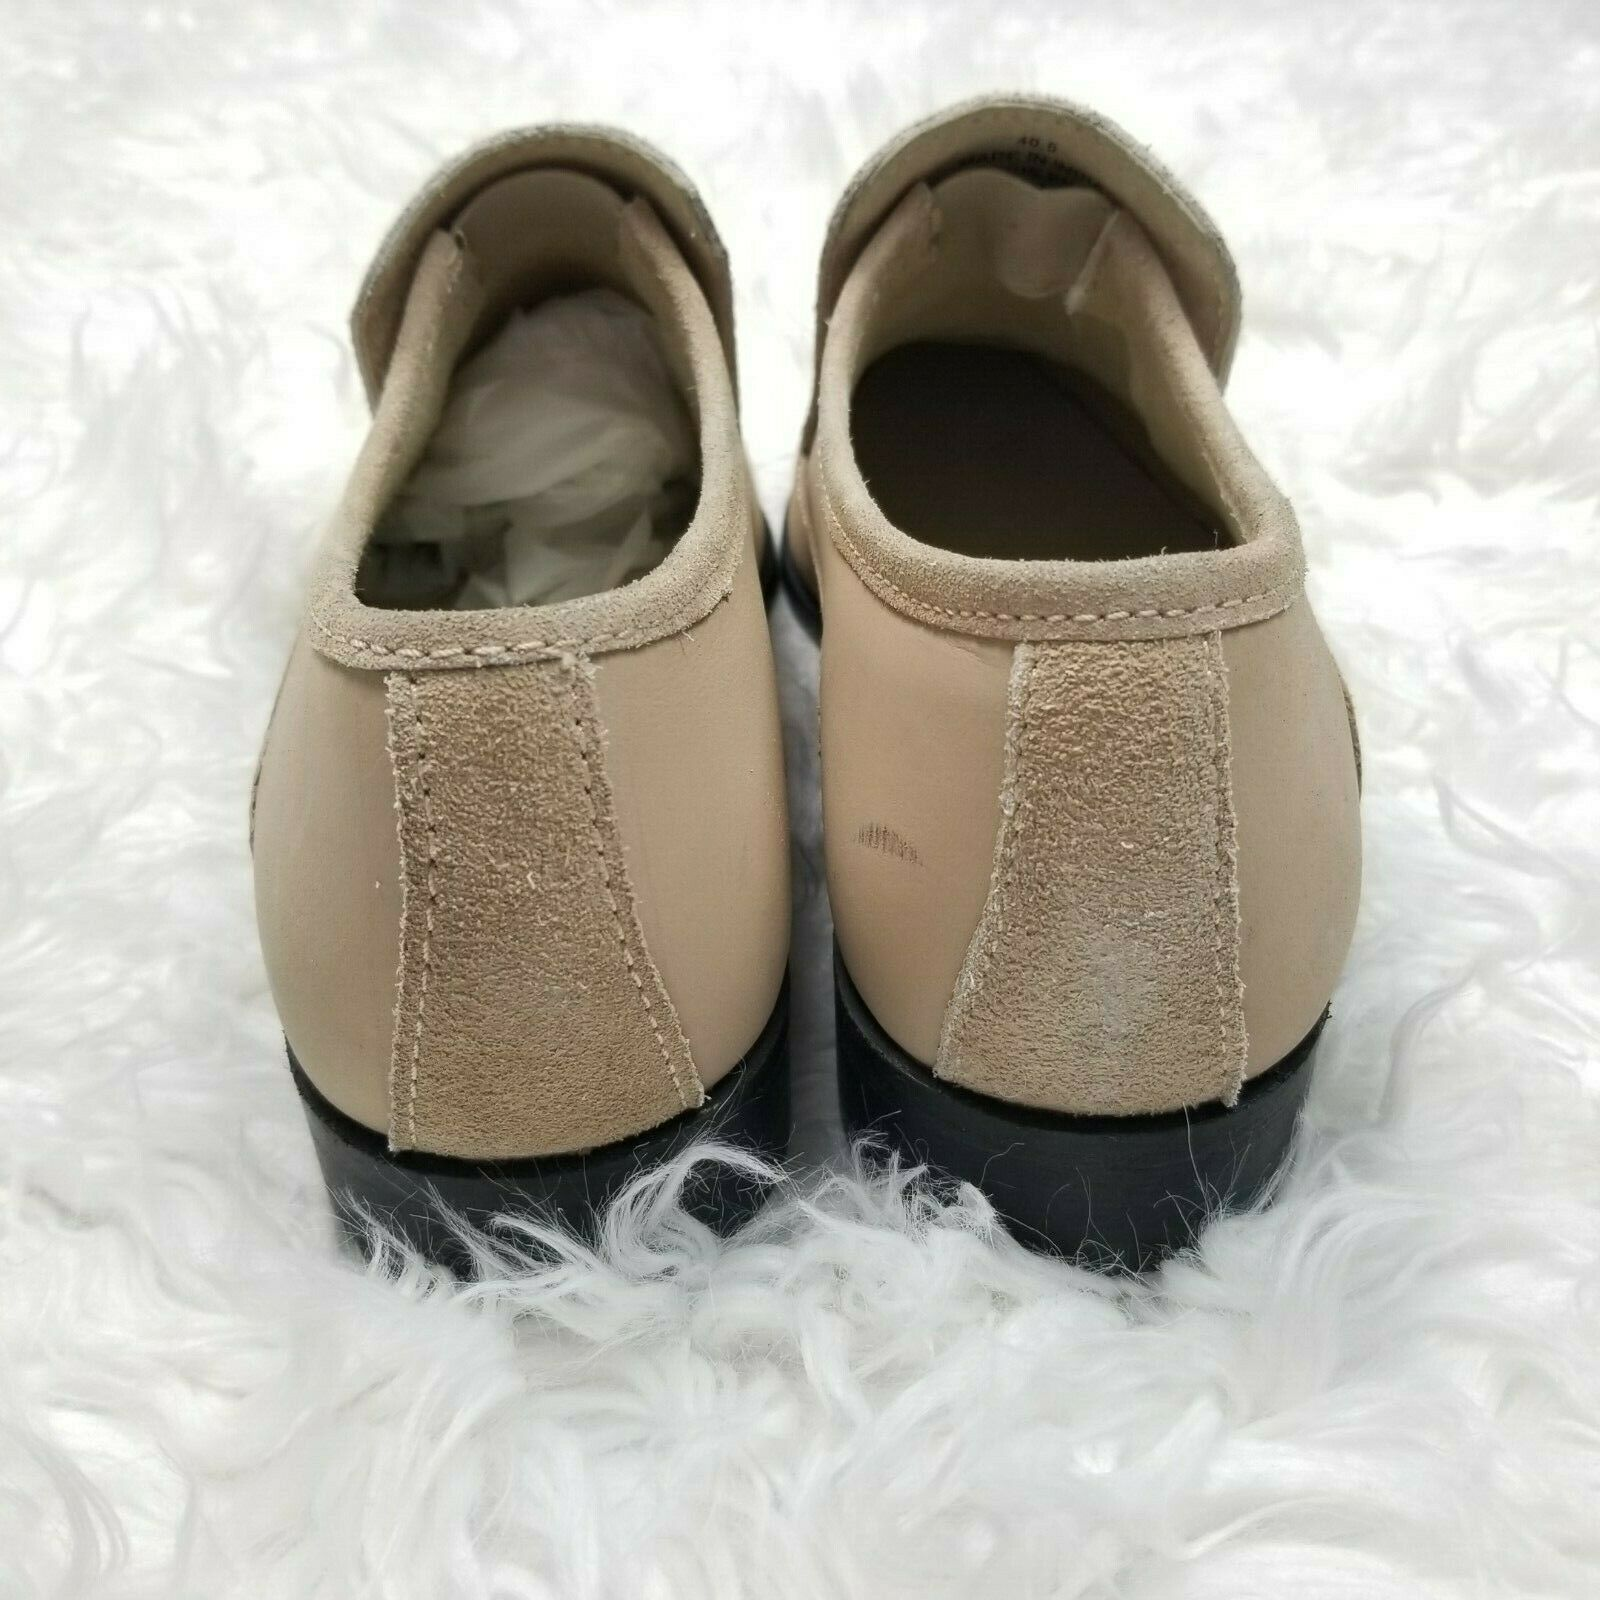 NWOT Free People Loafers Womens Size Size Size 40.5 9.5 Tan Suede Brady Slip On e4d1d6